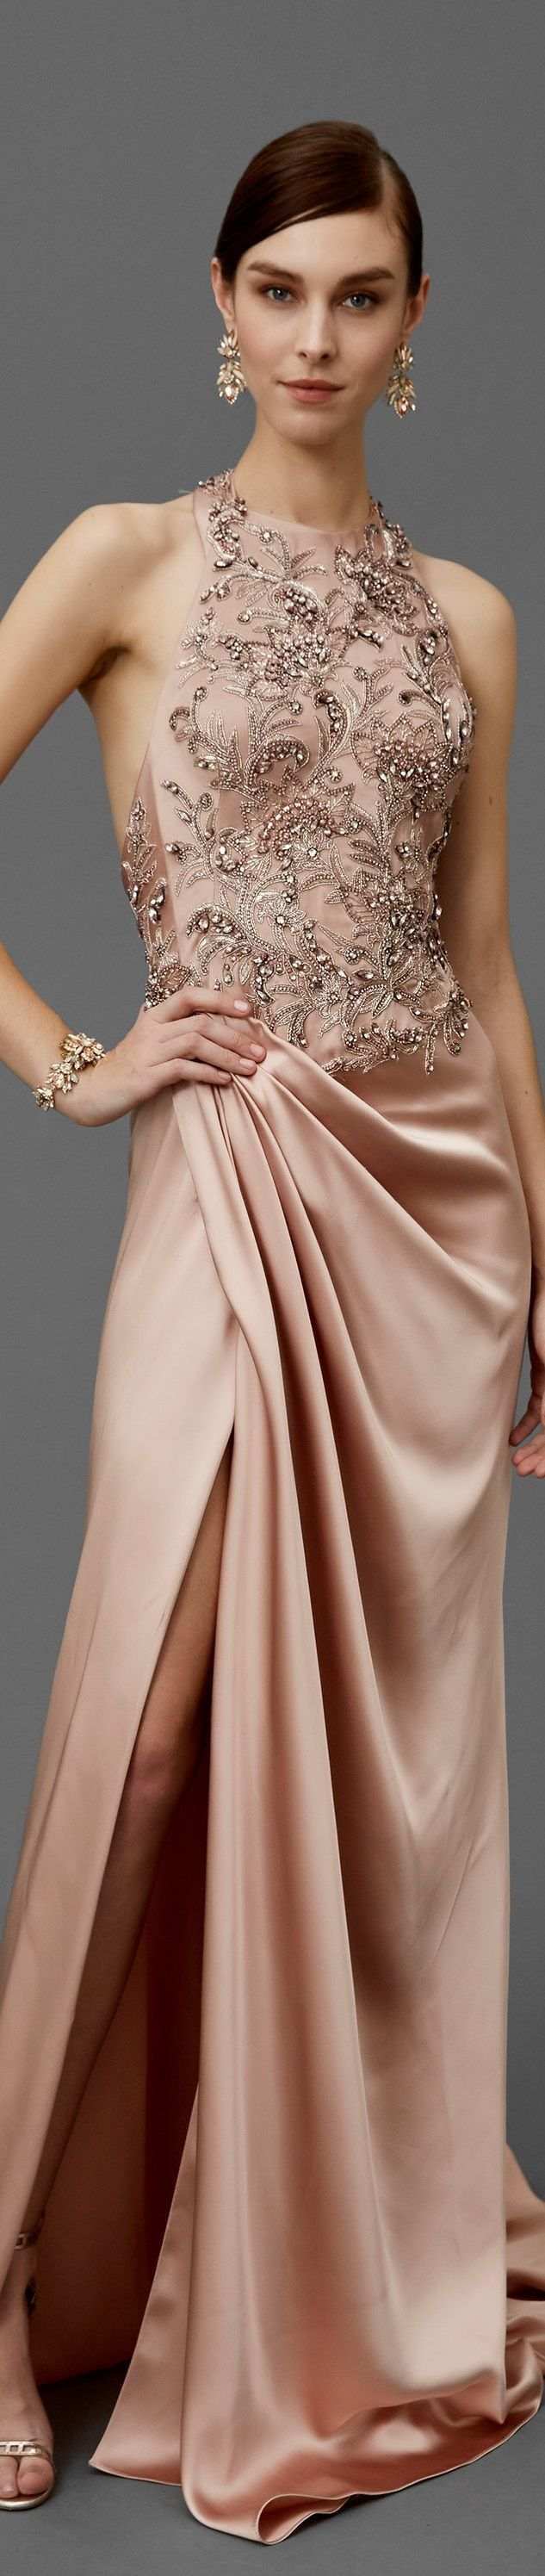 Marchesa Pre Fall 2016 ❤                                                                                                                                                                                 More